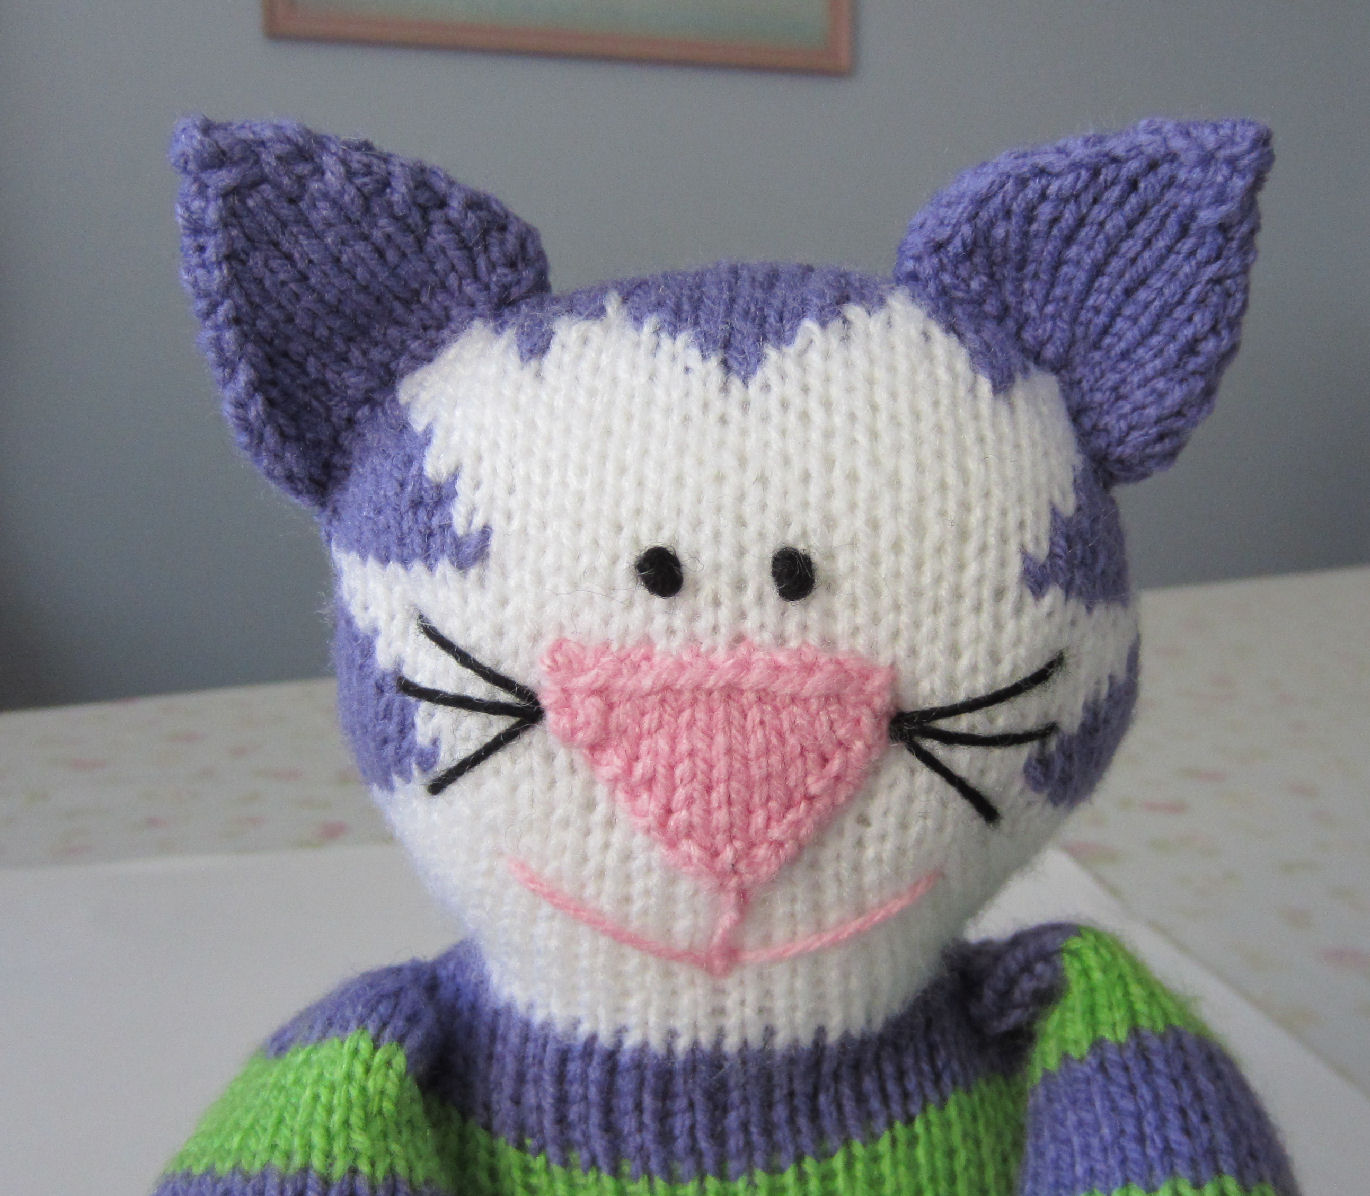 Knitted Cat Pattern : Justjen-knits&stitches: Share Kitty - Knitted Cat Pattern